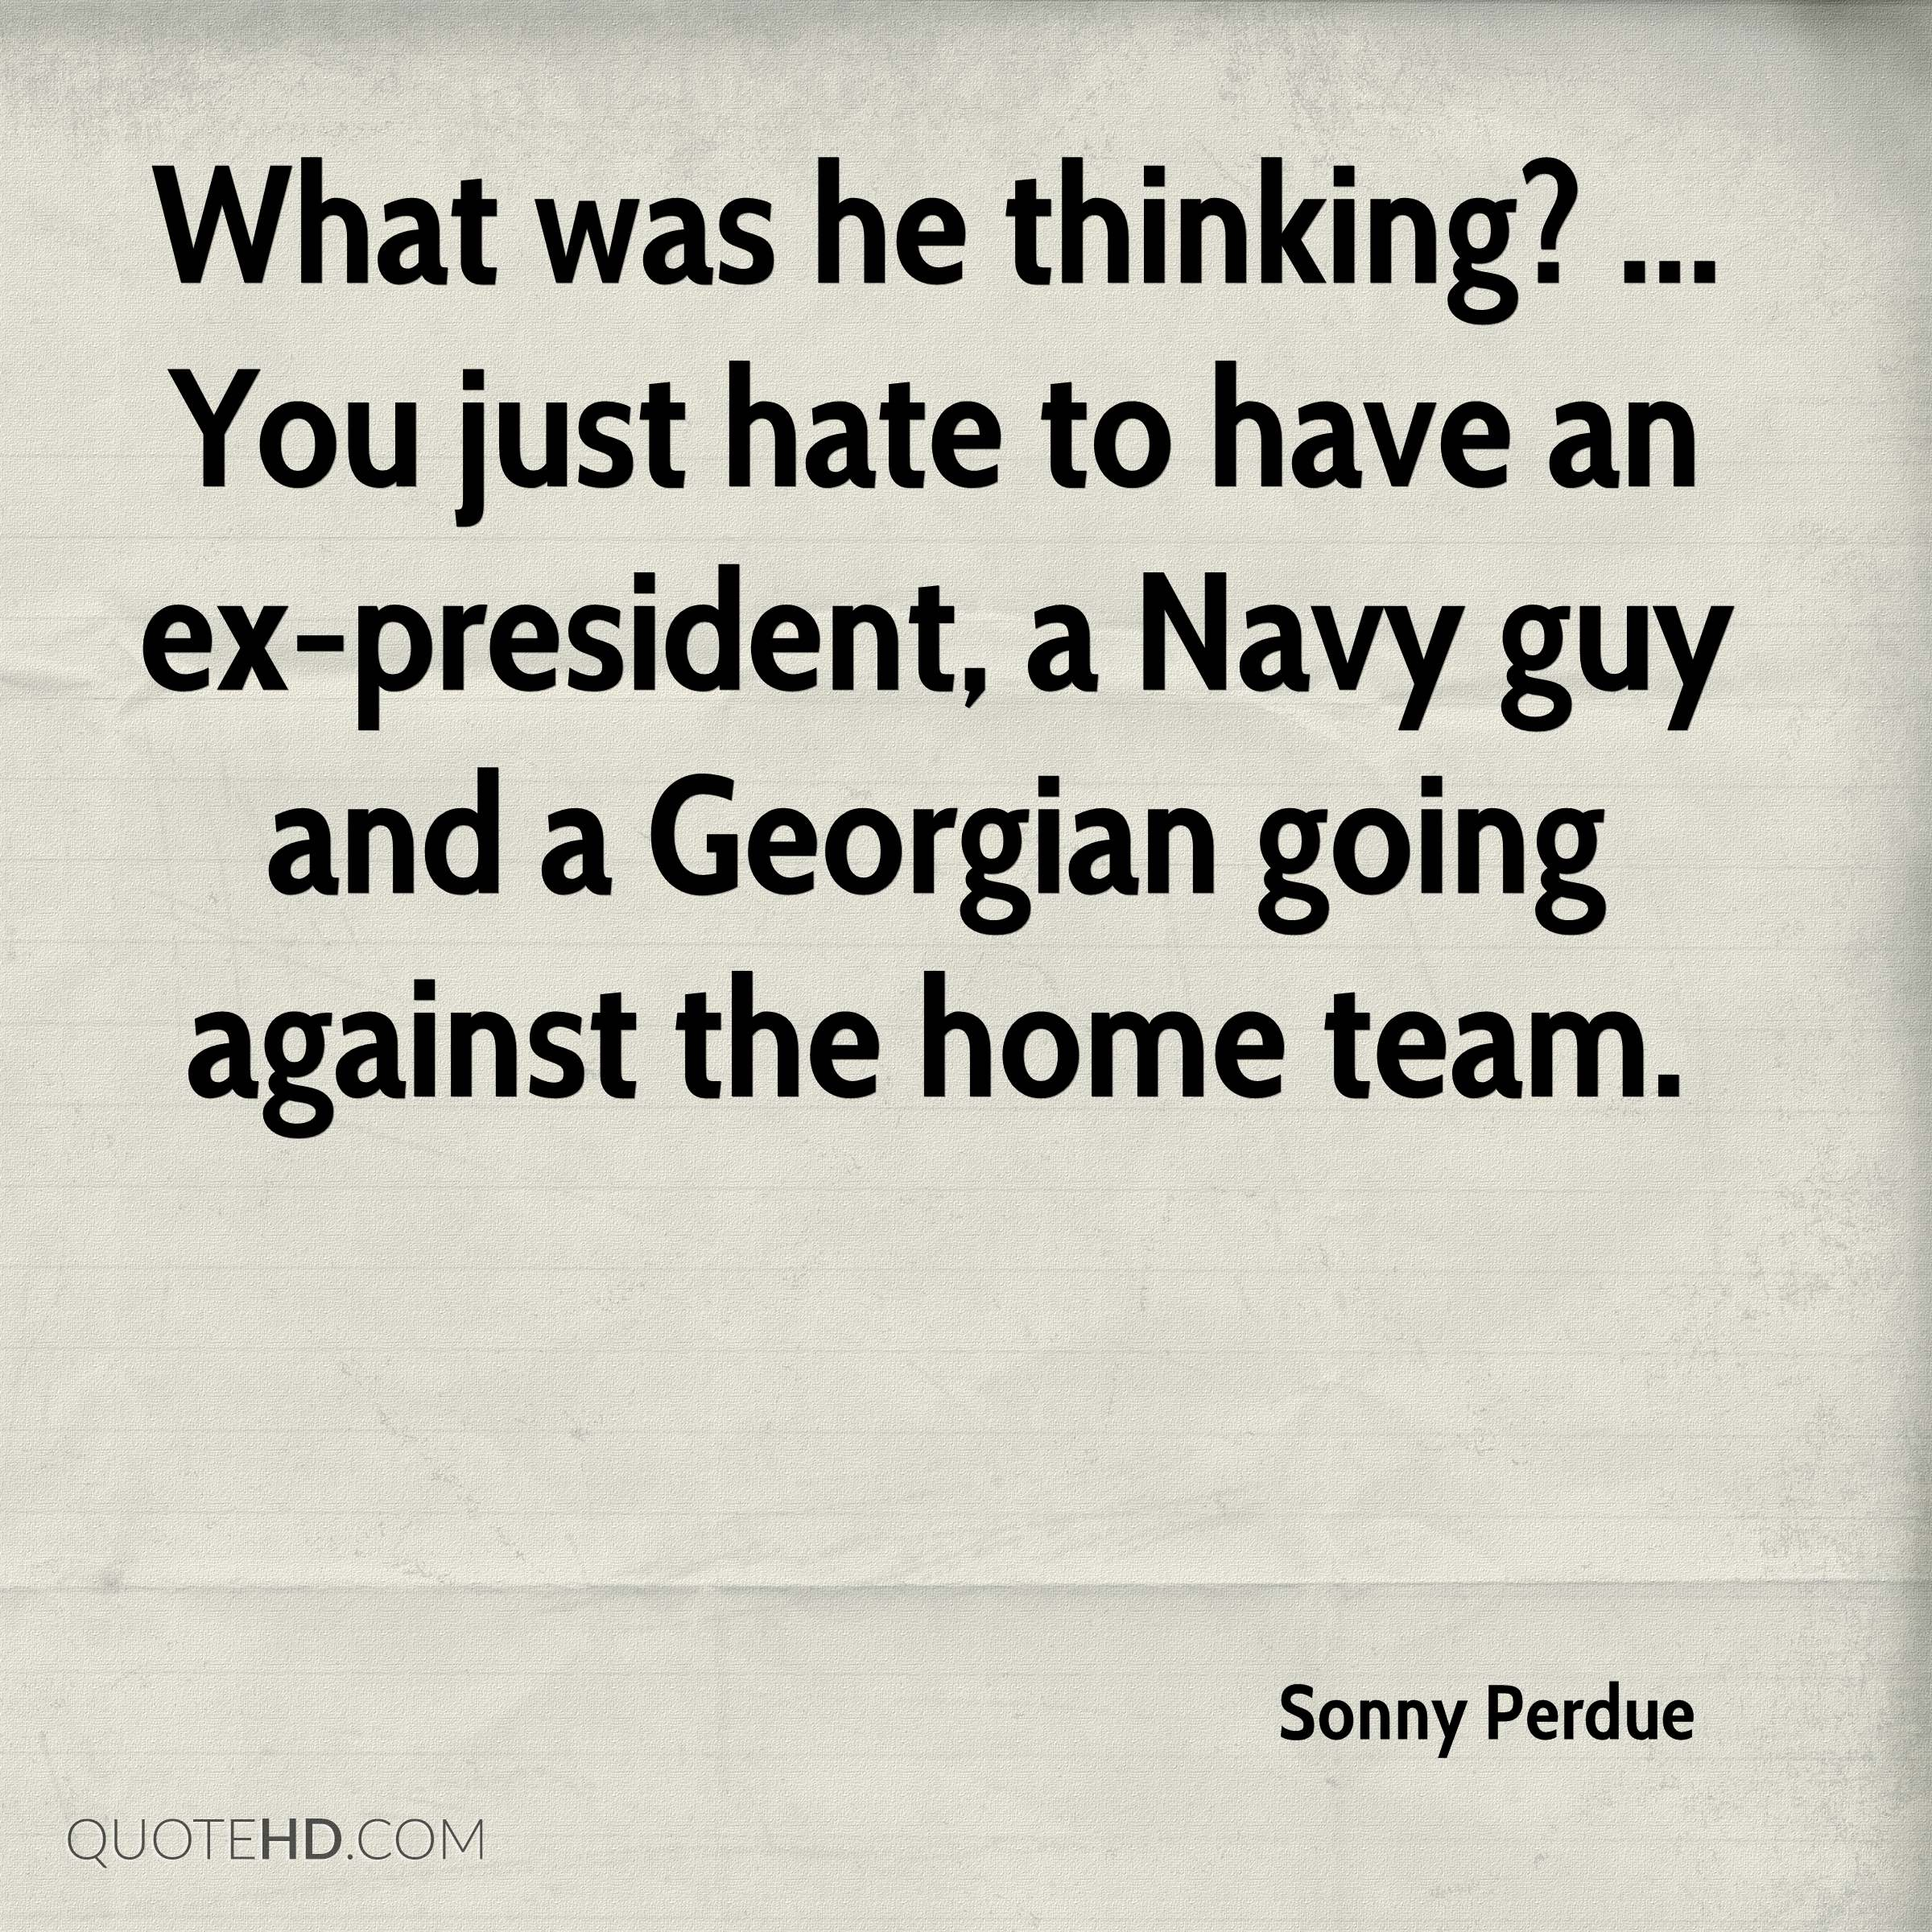 What was he thinking? ... You just hate to have an ex-president, a Navy guy and a Georgian going against the home team.